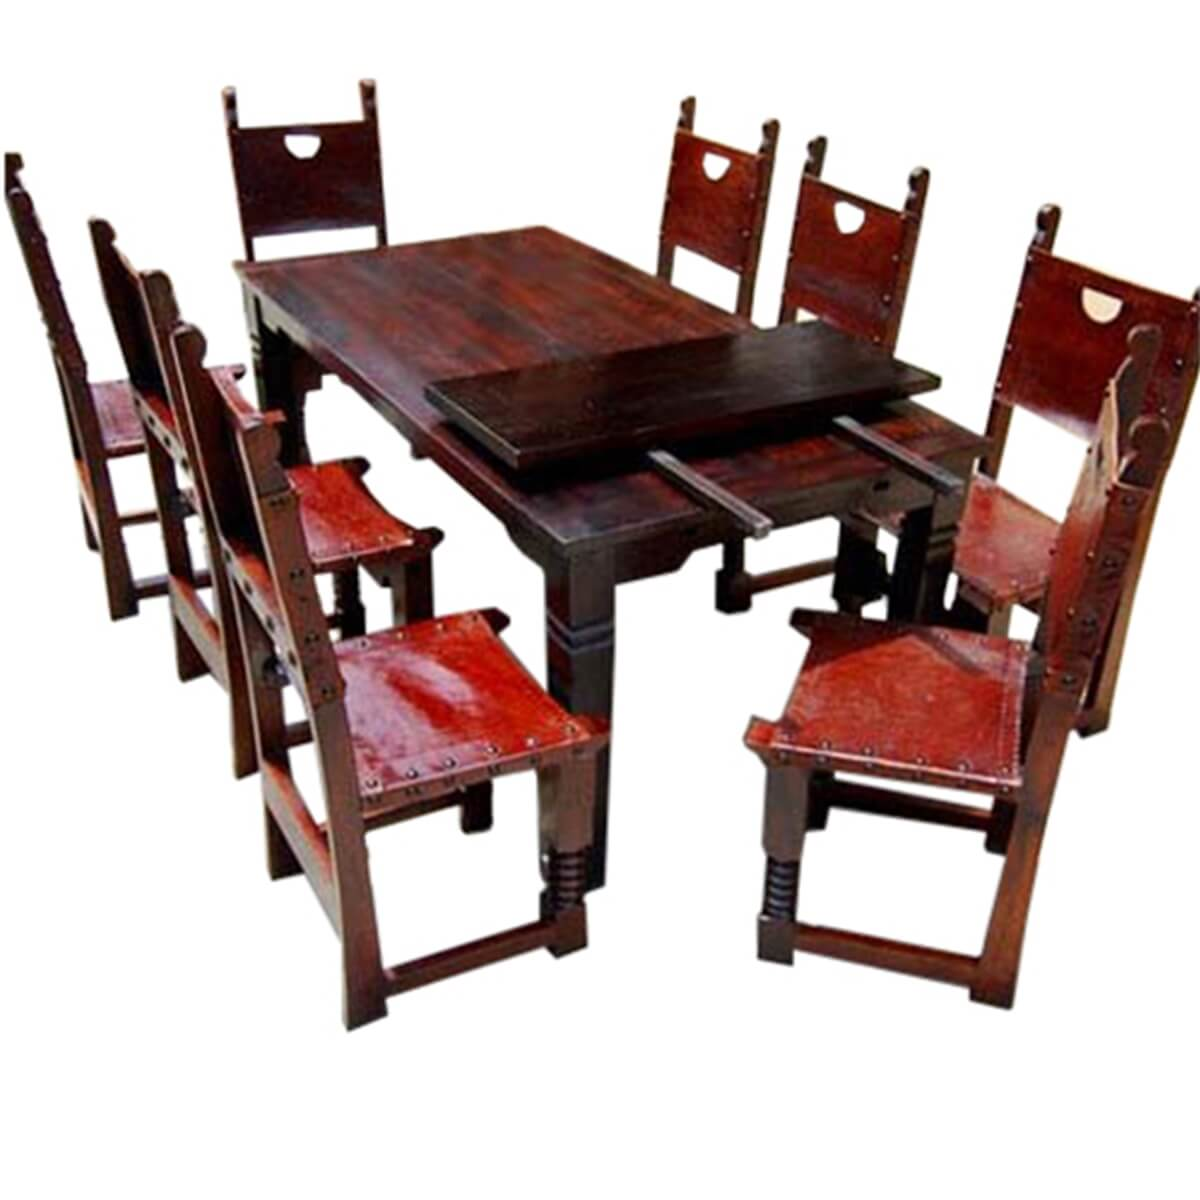 9 pc rustic solid wood dining table and chair set w extension. Black Bedroom Furniture Sets. Home Design Ideas